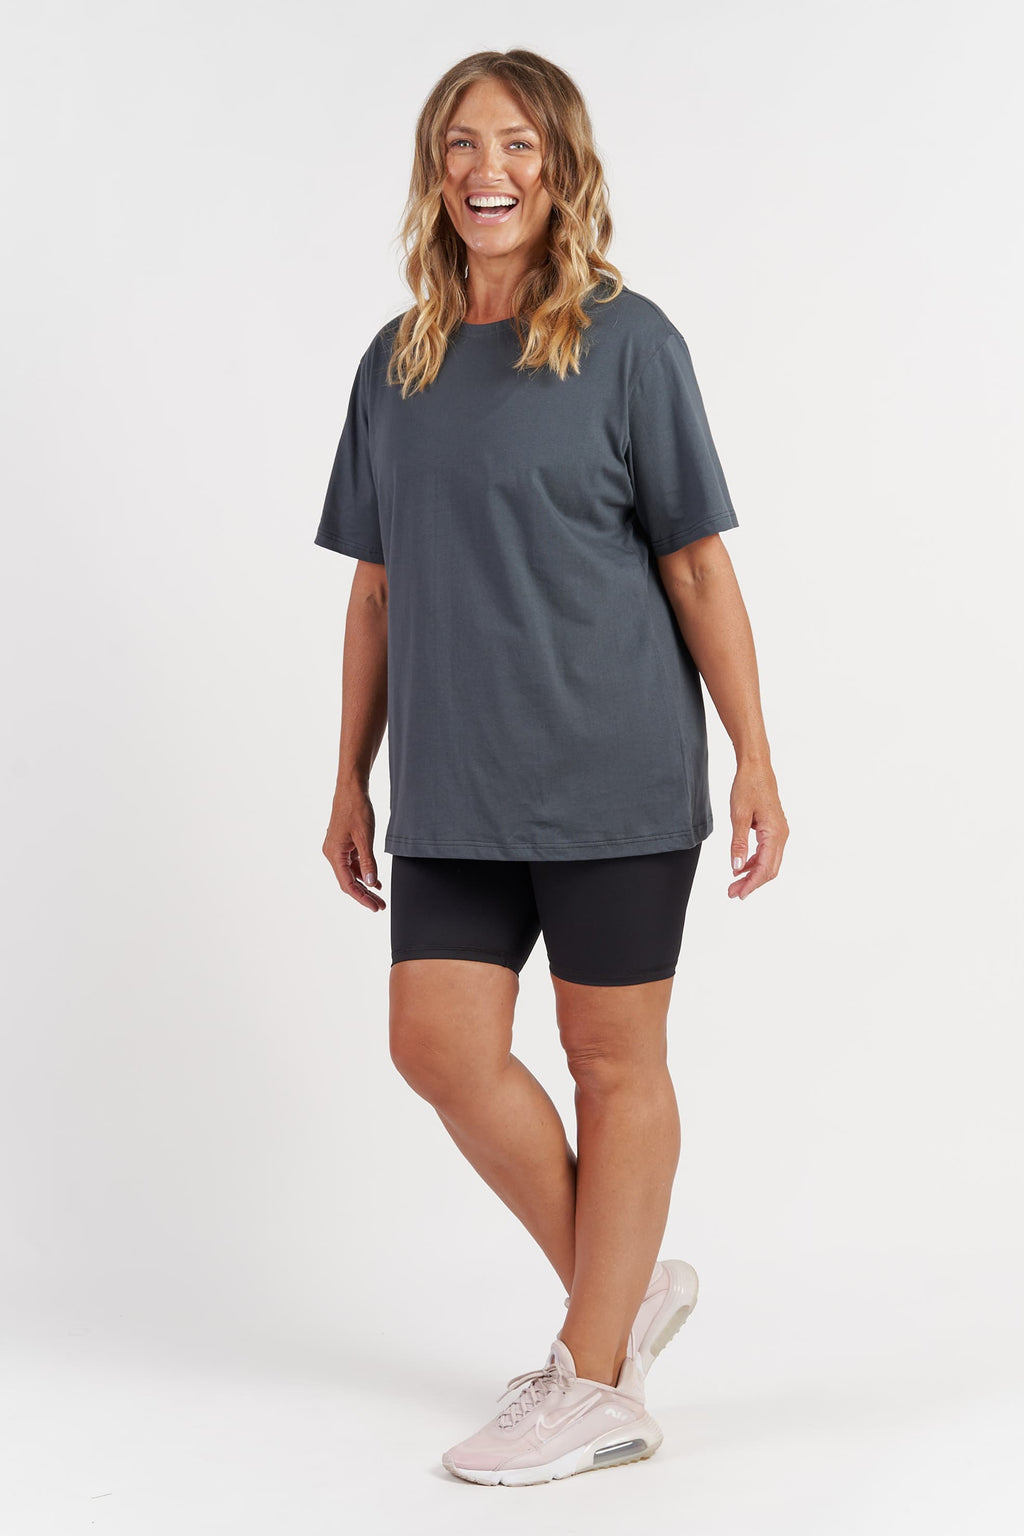 activewear-oversized-tee-charcoal-large-side.